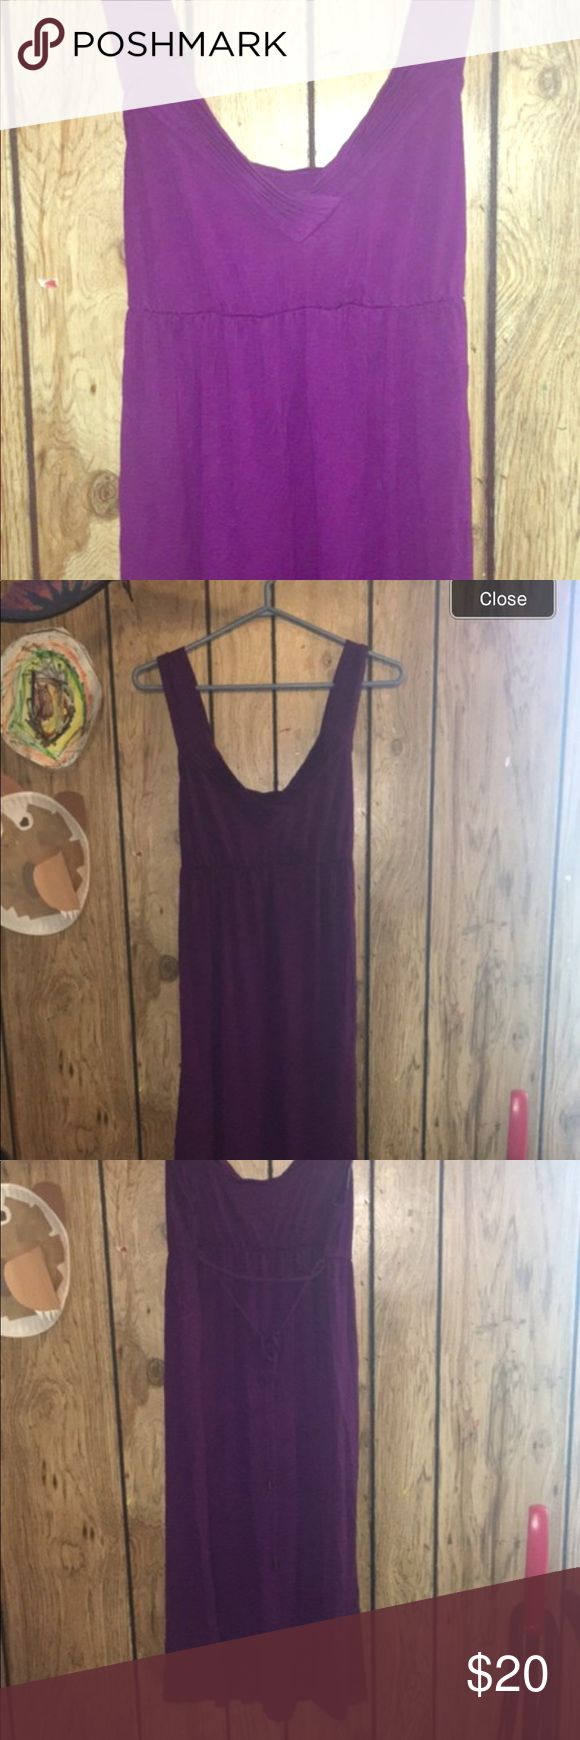 Maternity dress size M Great detailing and it ties in back for a better fit. Worn for a wedding, maybe an hour. Liz Lange Dresses Maxi